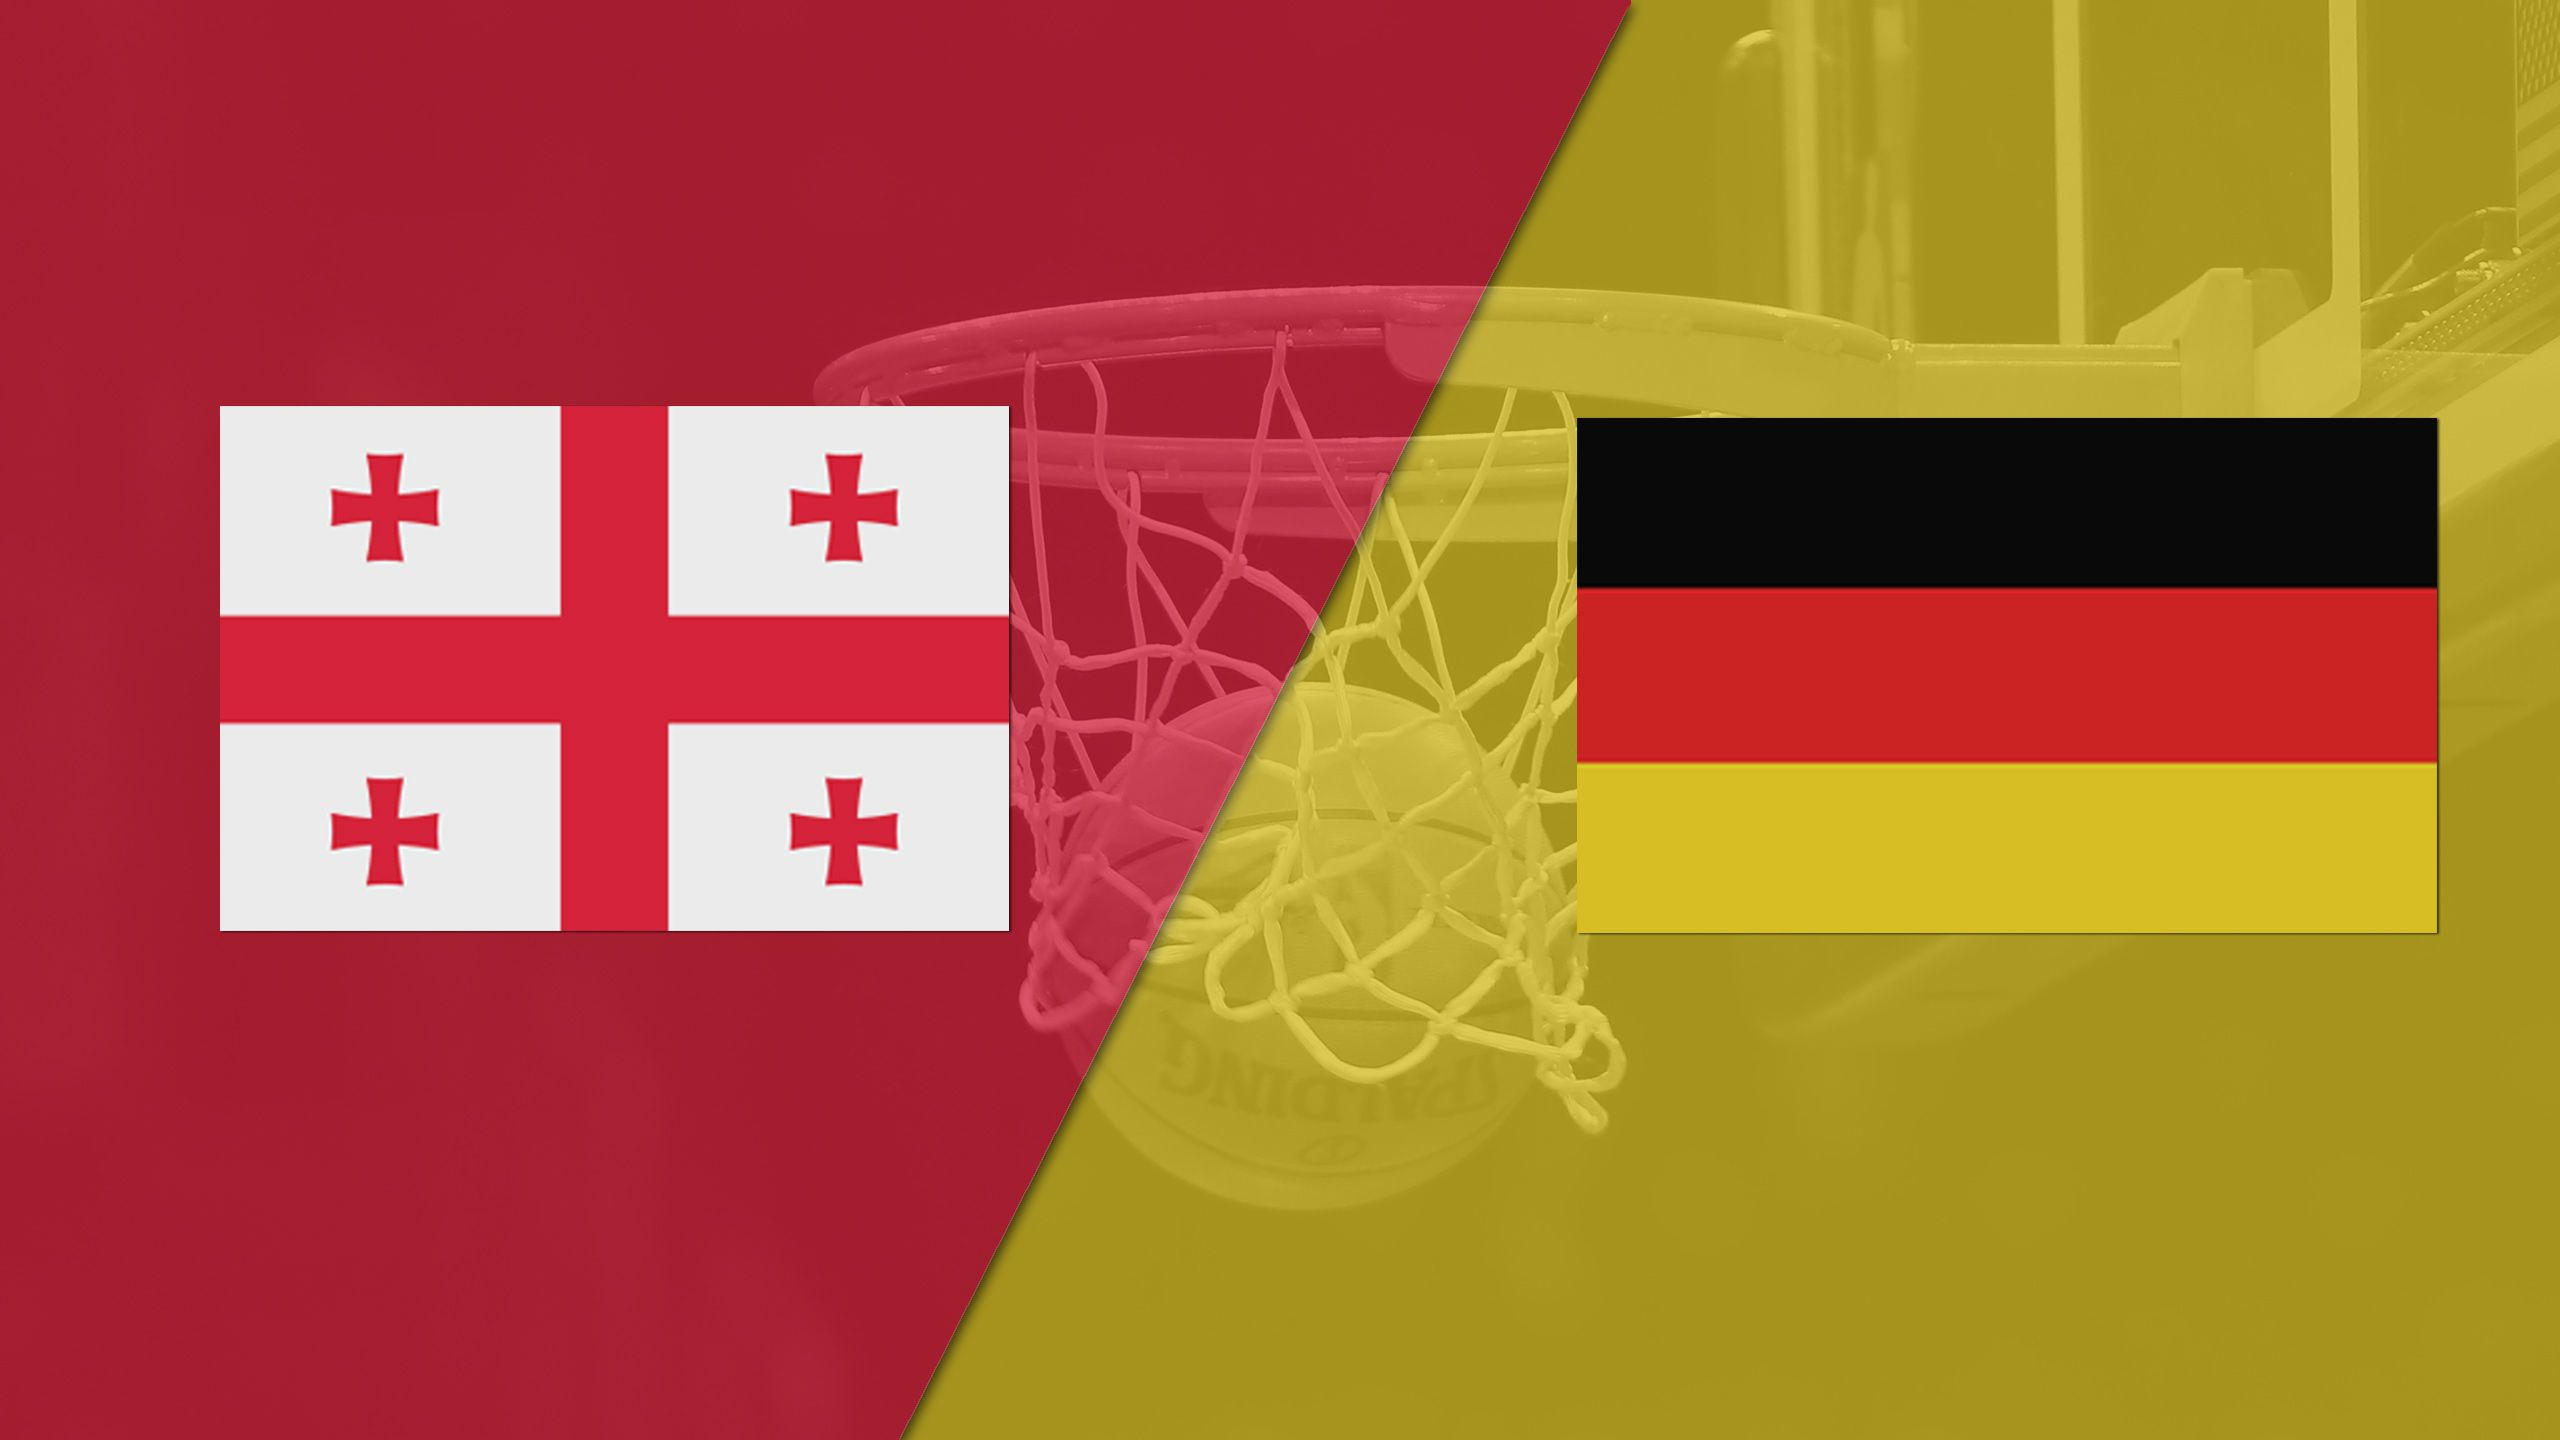 Georgia vs. Germany (FIBA World Cup 2019 Qualifier)